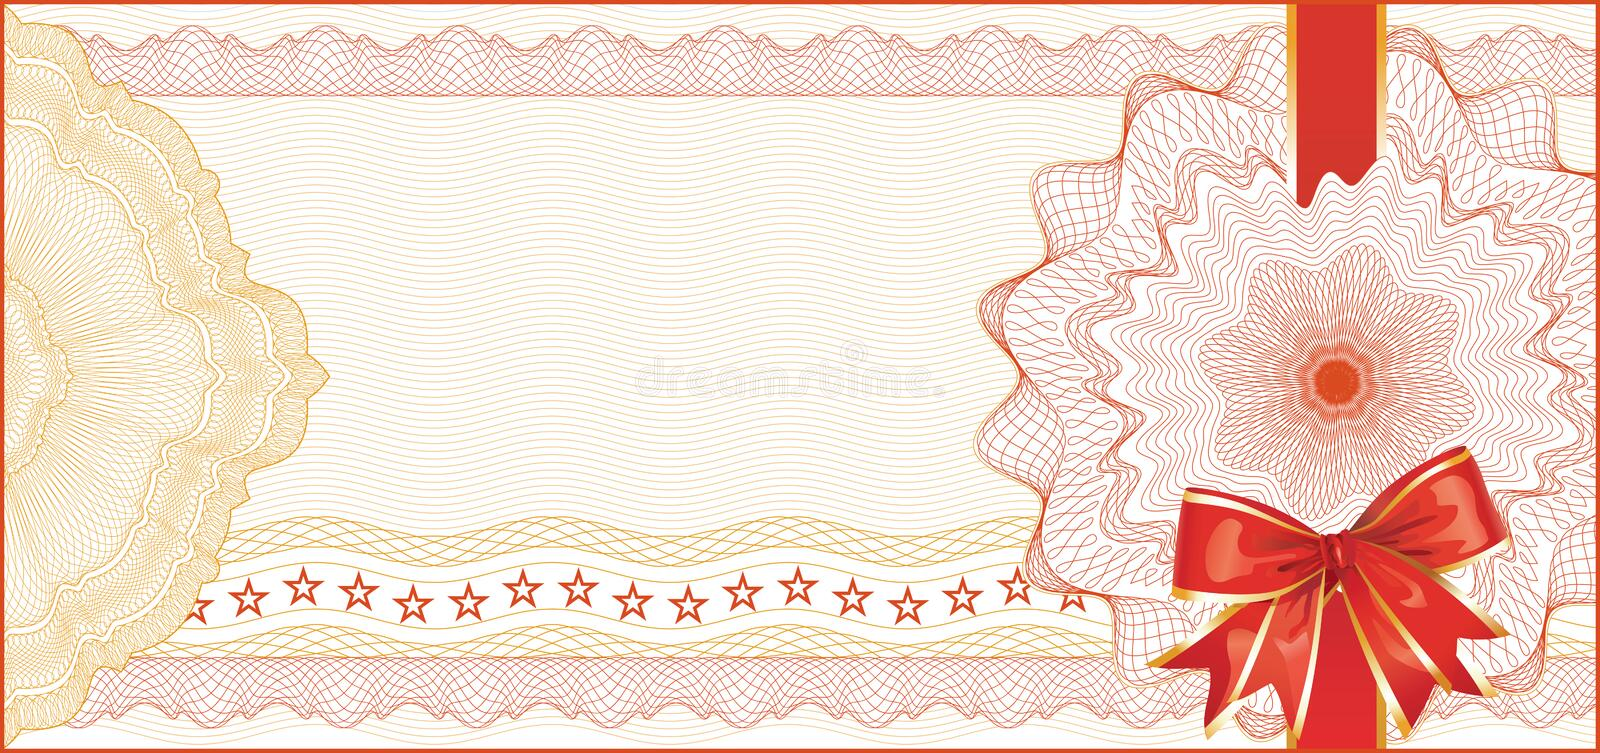 Guilloche Background For Gift Certificate Royalty Free Stock Photo